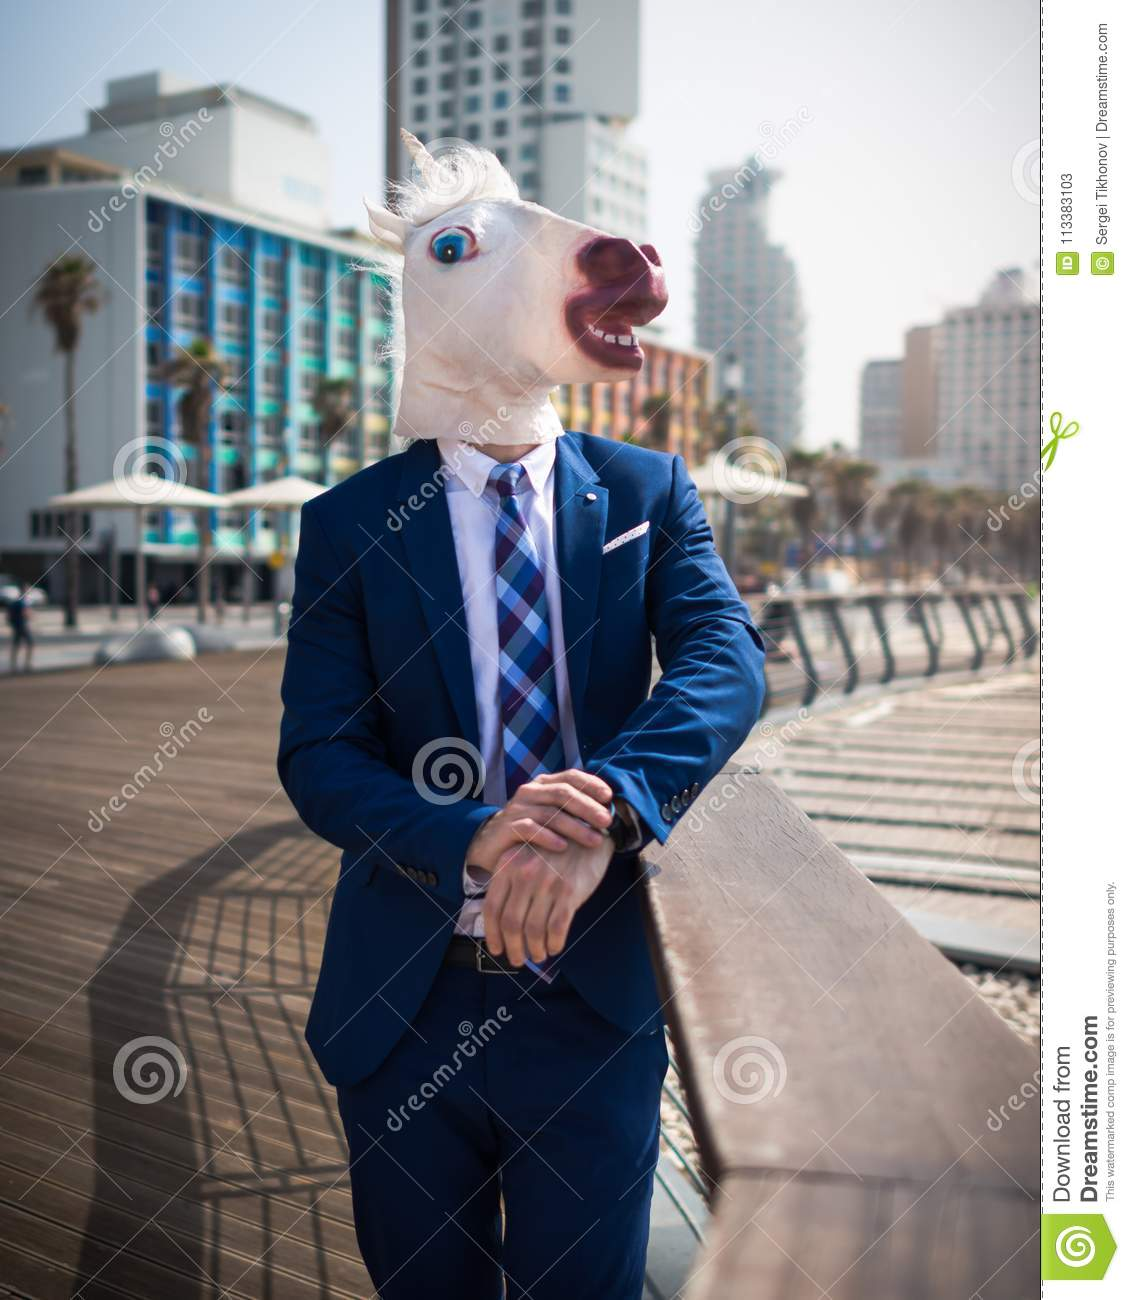 Unusual young man in elegant suit stands on the city waterfront